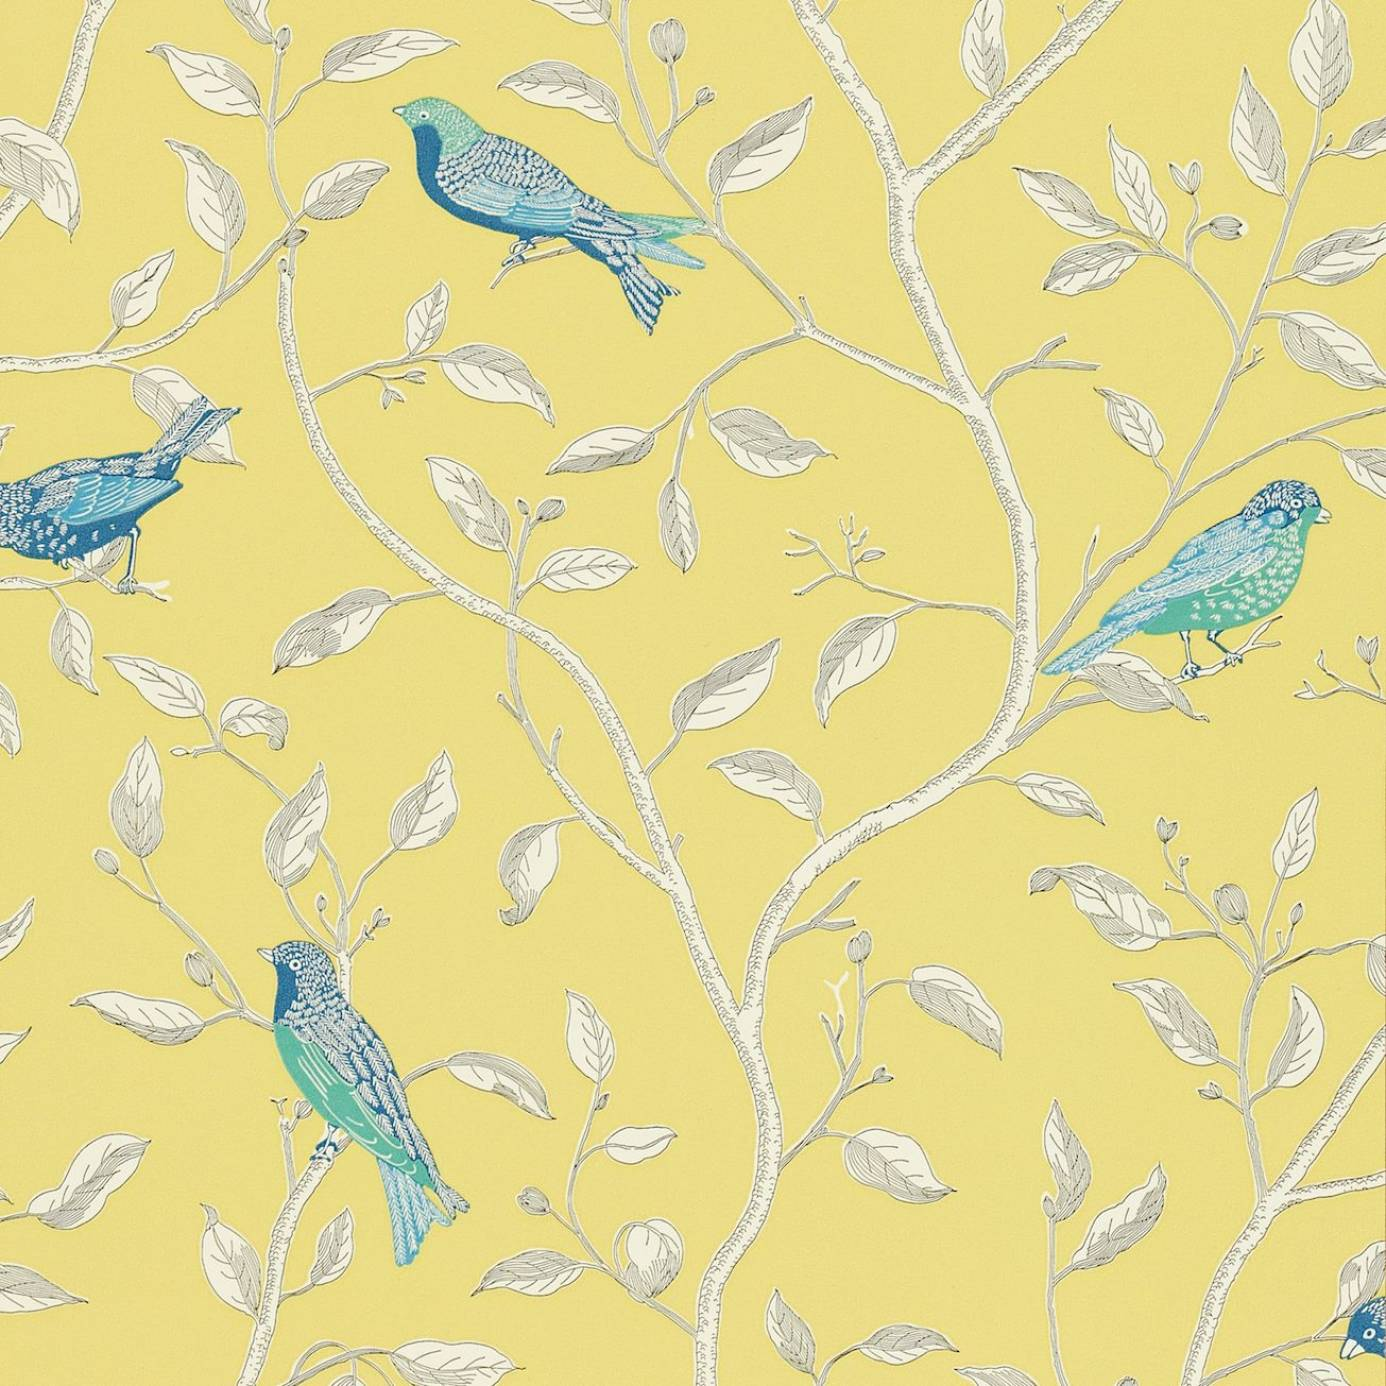 Finches wallpaper yellow dopwfi101 sanderson options for Wallpaper home fabrics